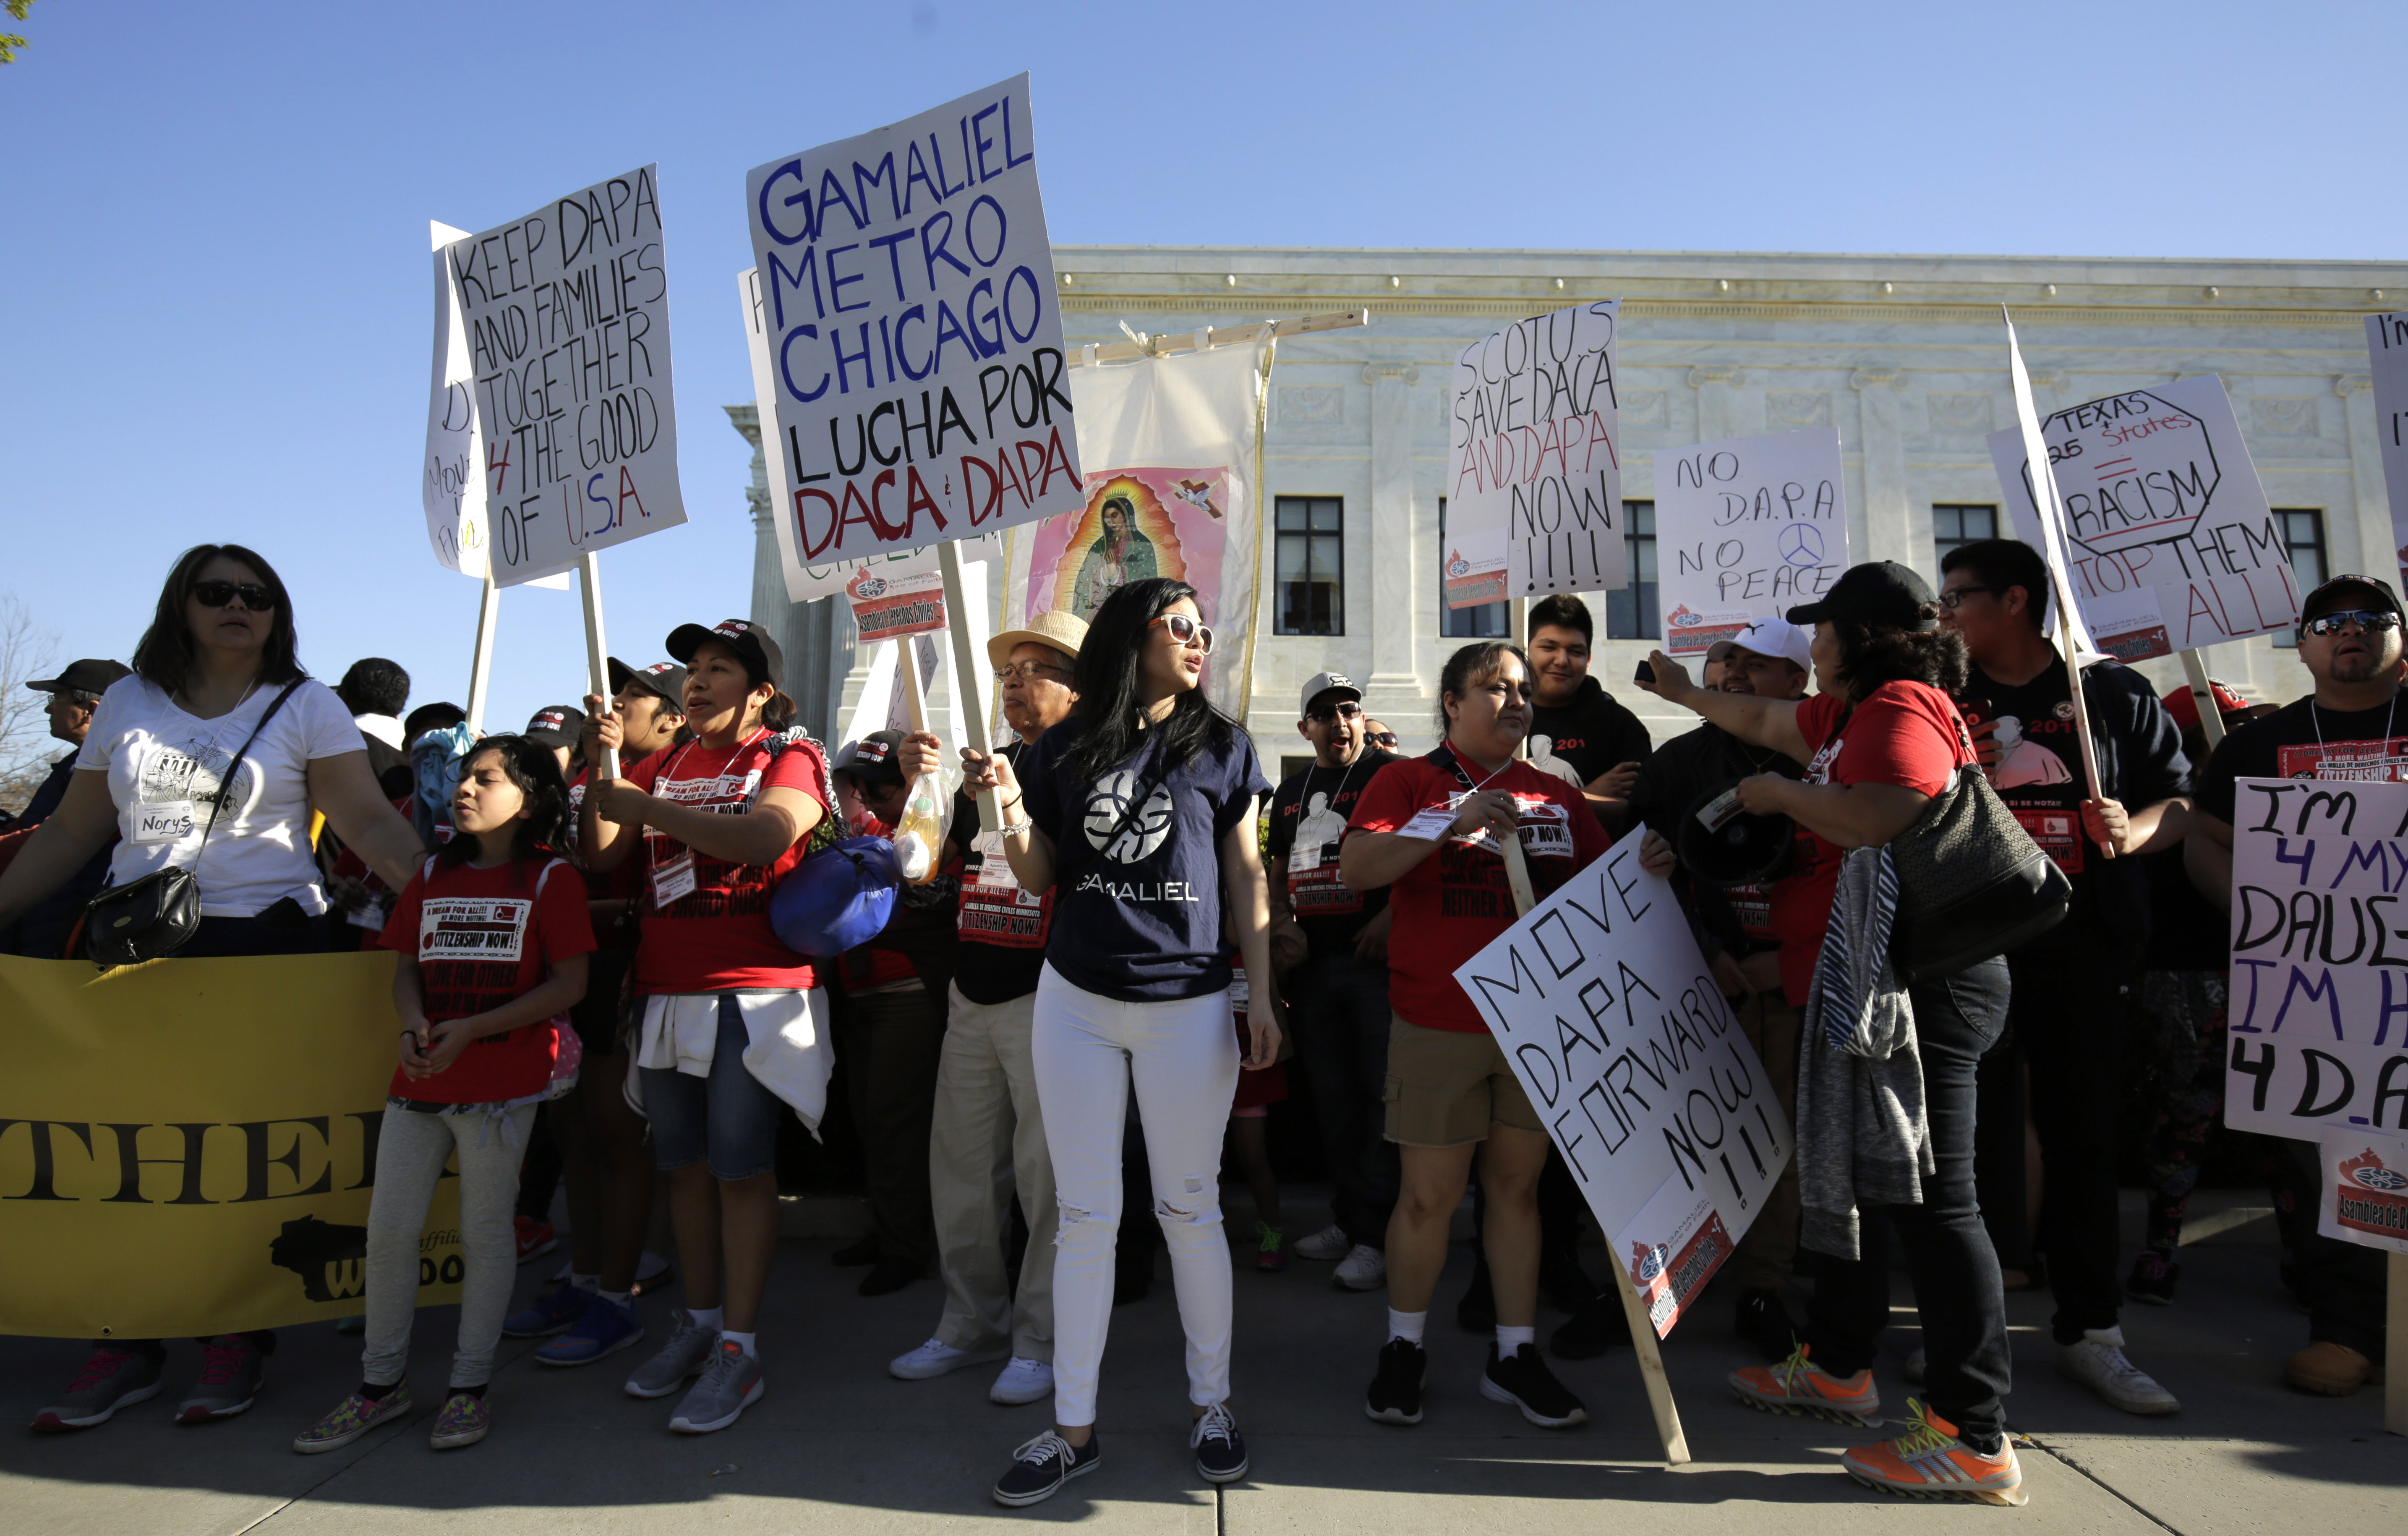 Demonstrators hold signs asking the Supreme Court to allow DAPA to move forward